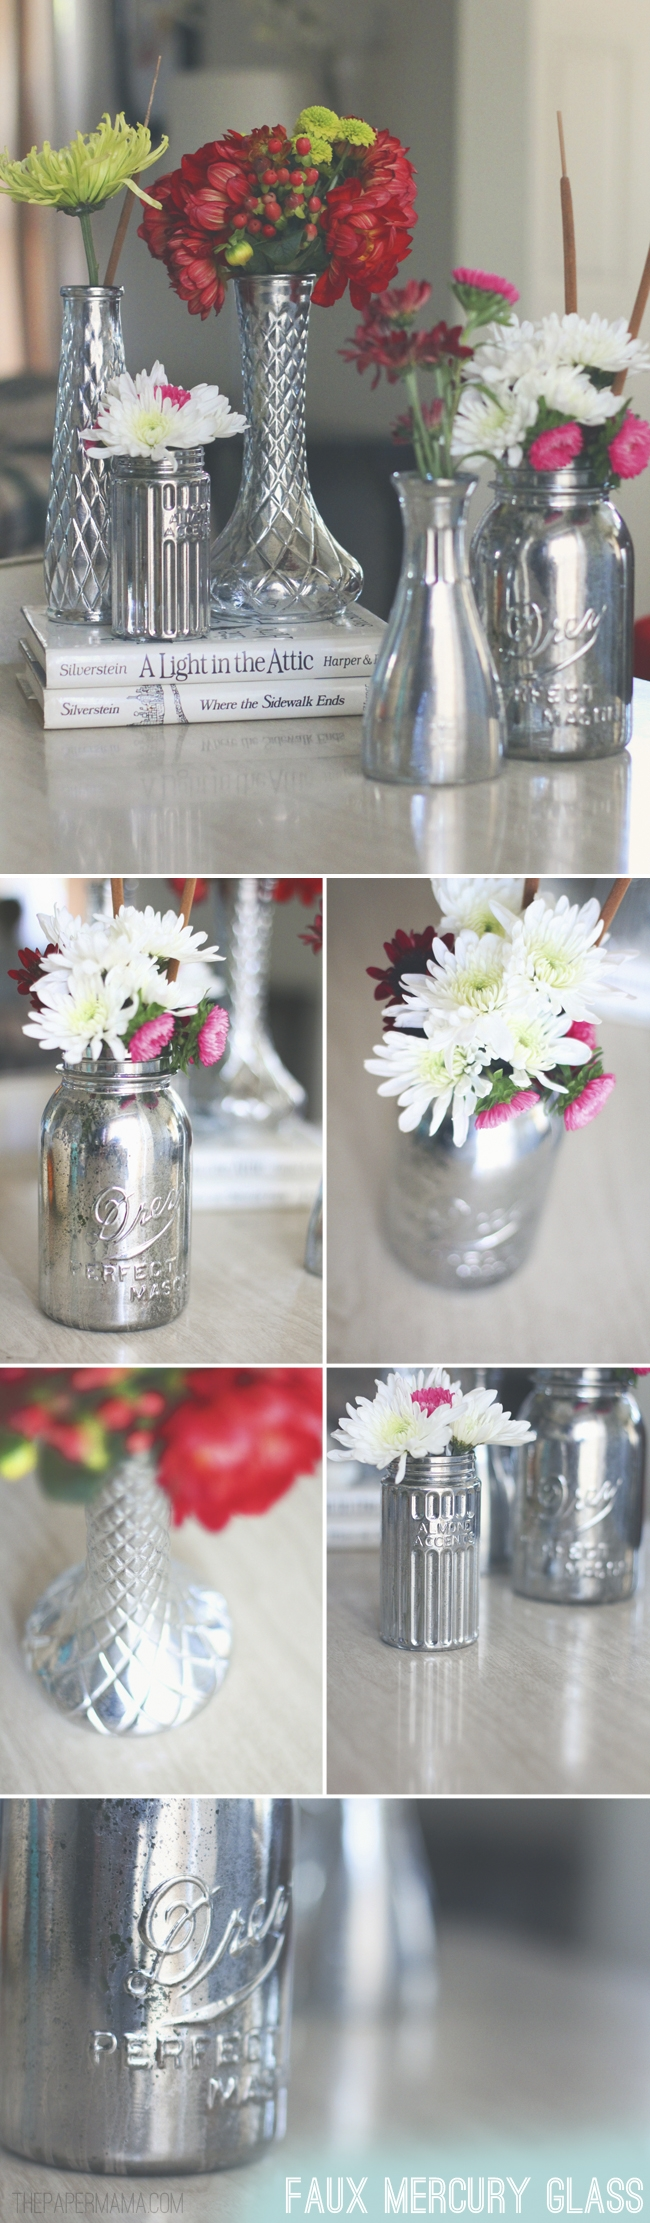 Craft Ideas With Glass Vases